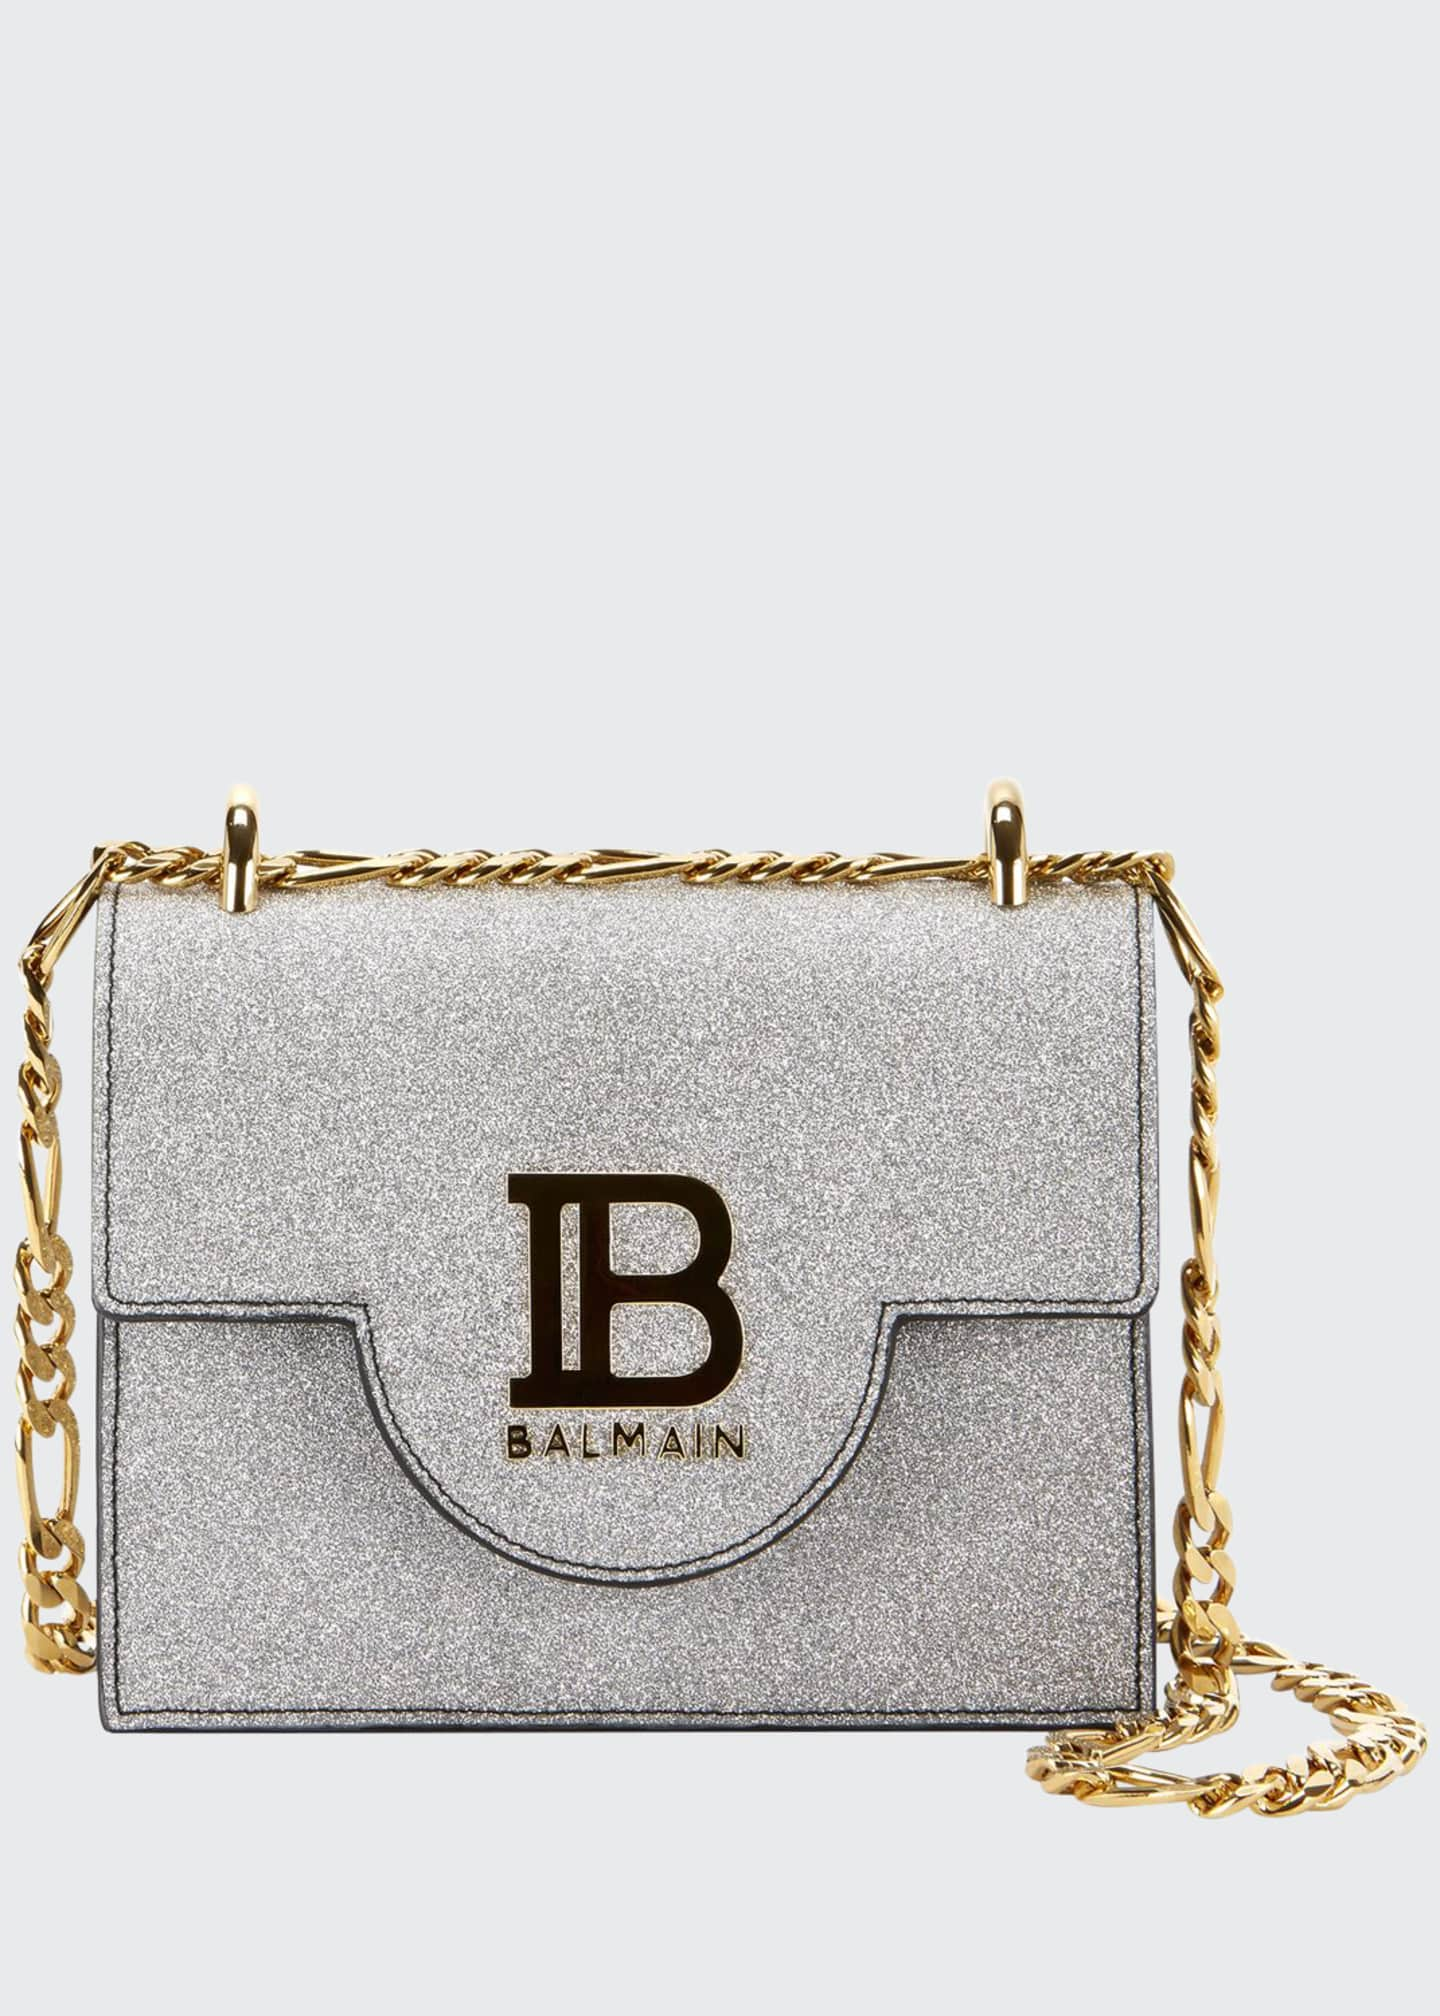 Balmain B BAG 18 GLITTER LEATHER